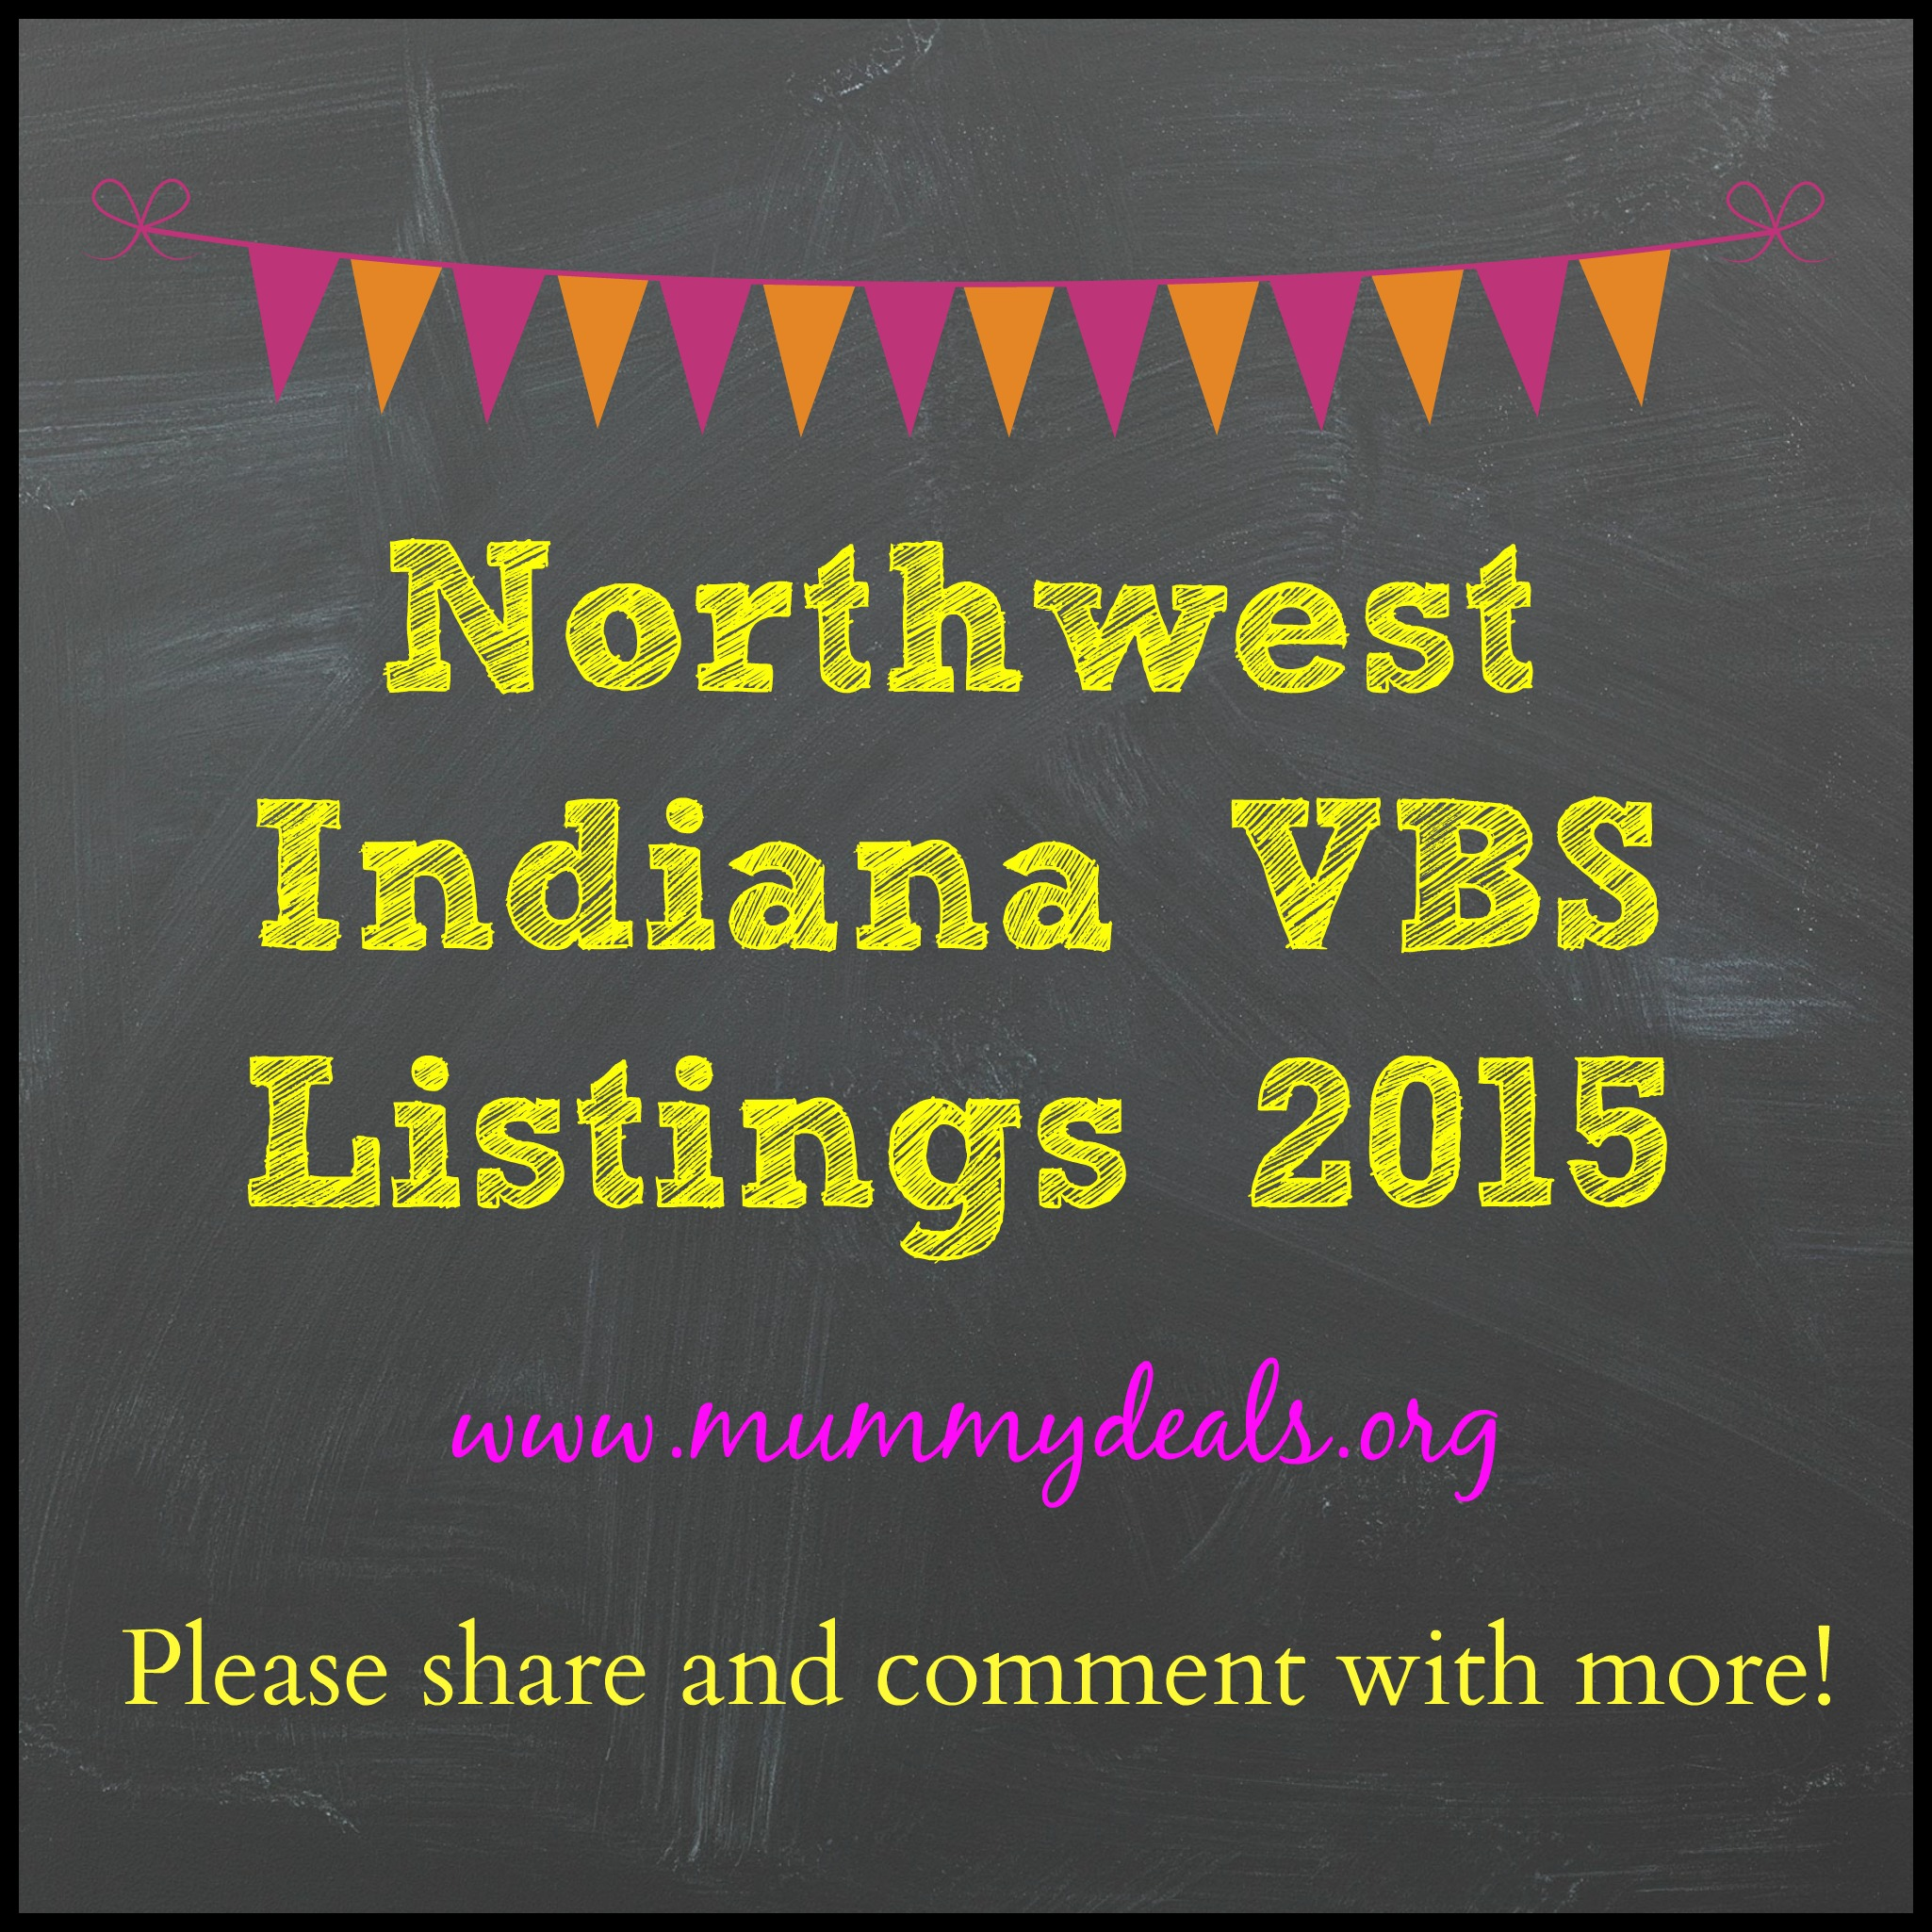 Northwest Indiana VBS Listings 2015